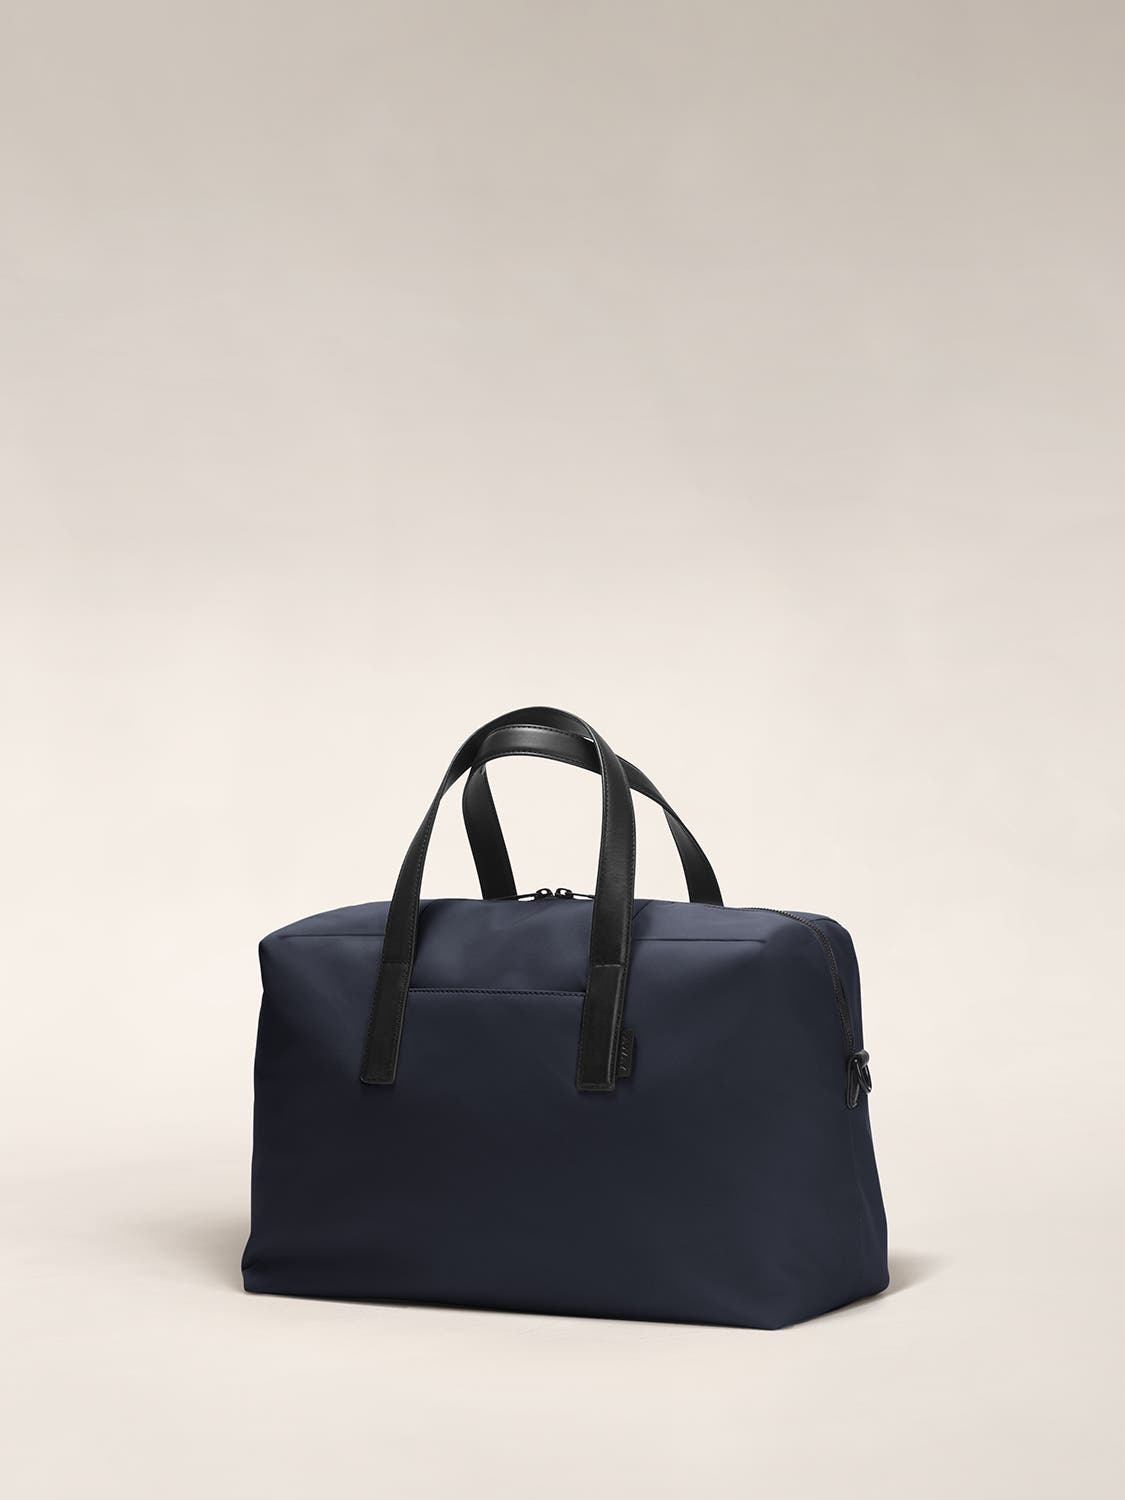 Angled view of a navy duffle bag with crossed straps.